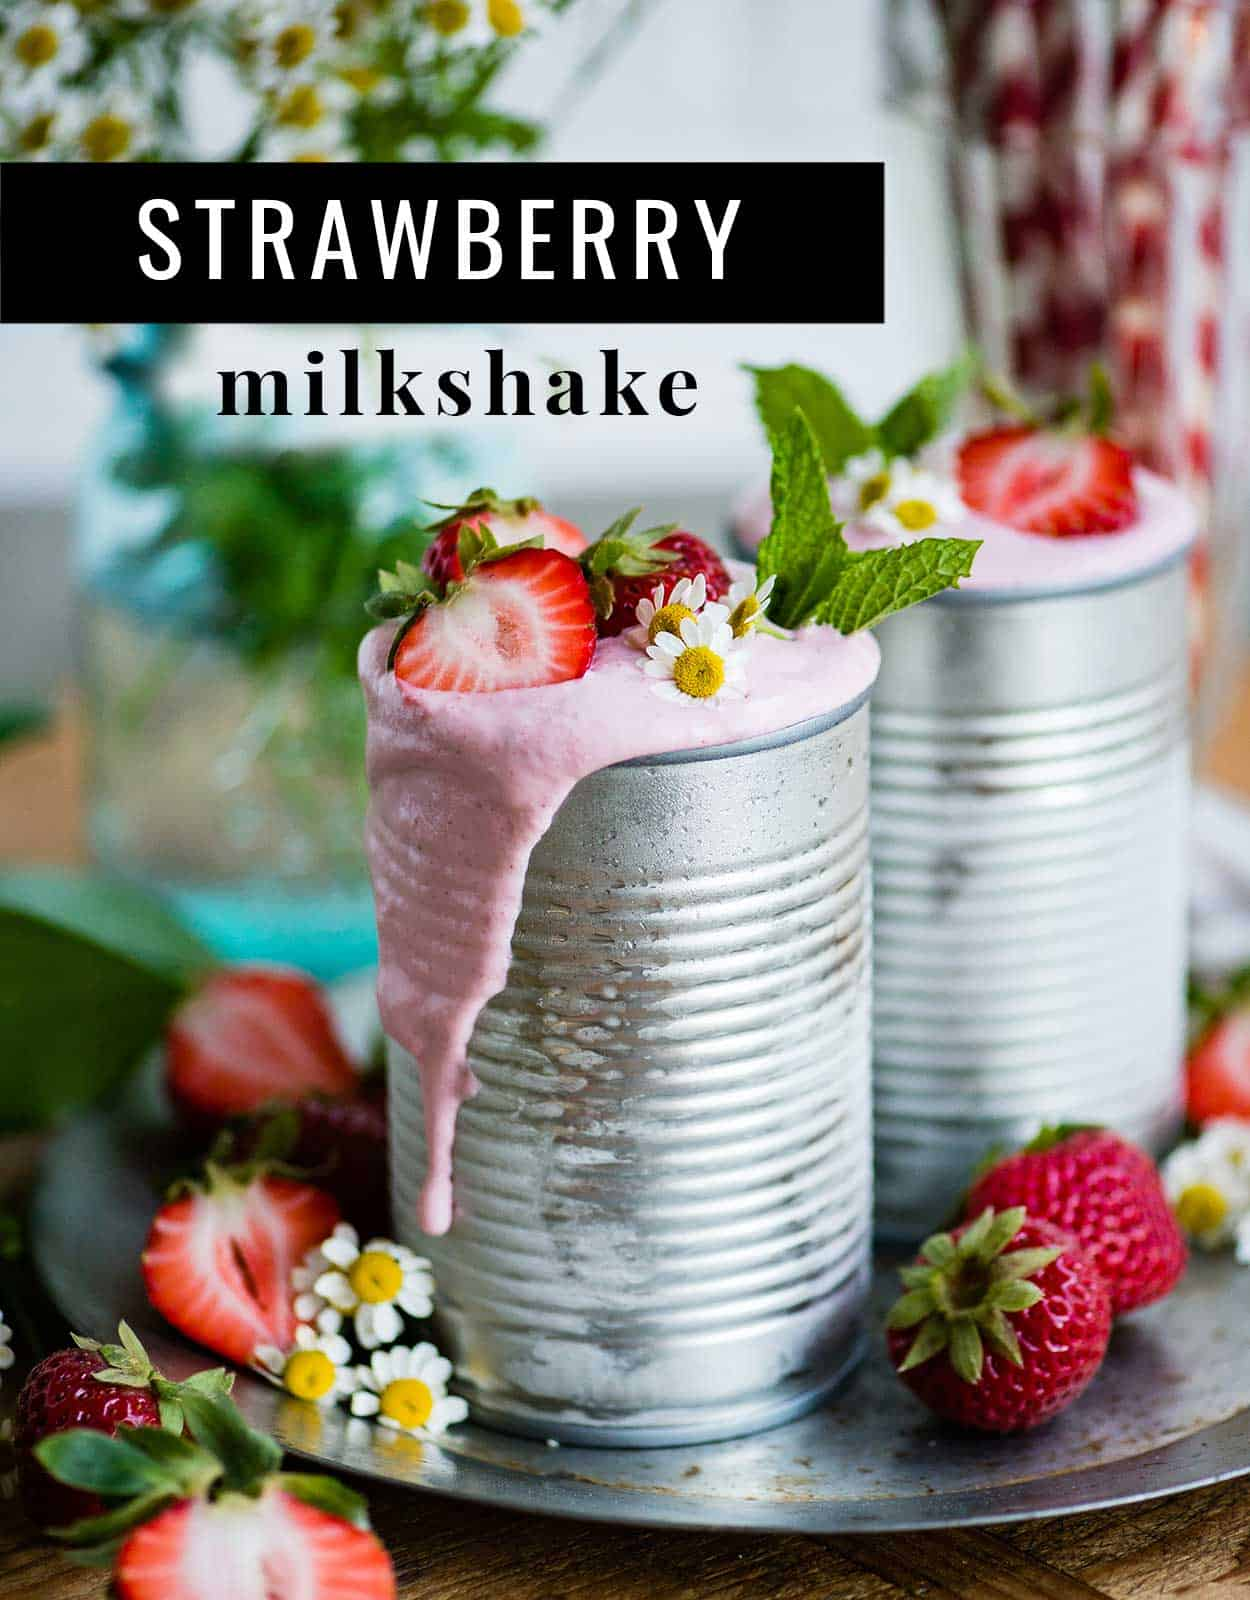 Strawberry milkshake using a nut-based milk in tin cans